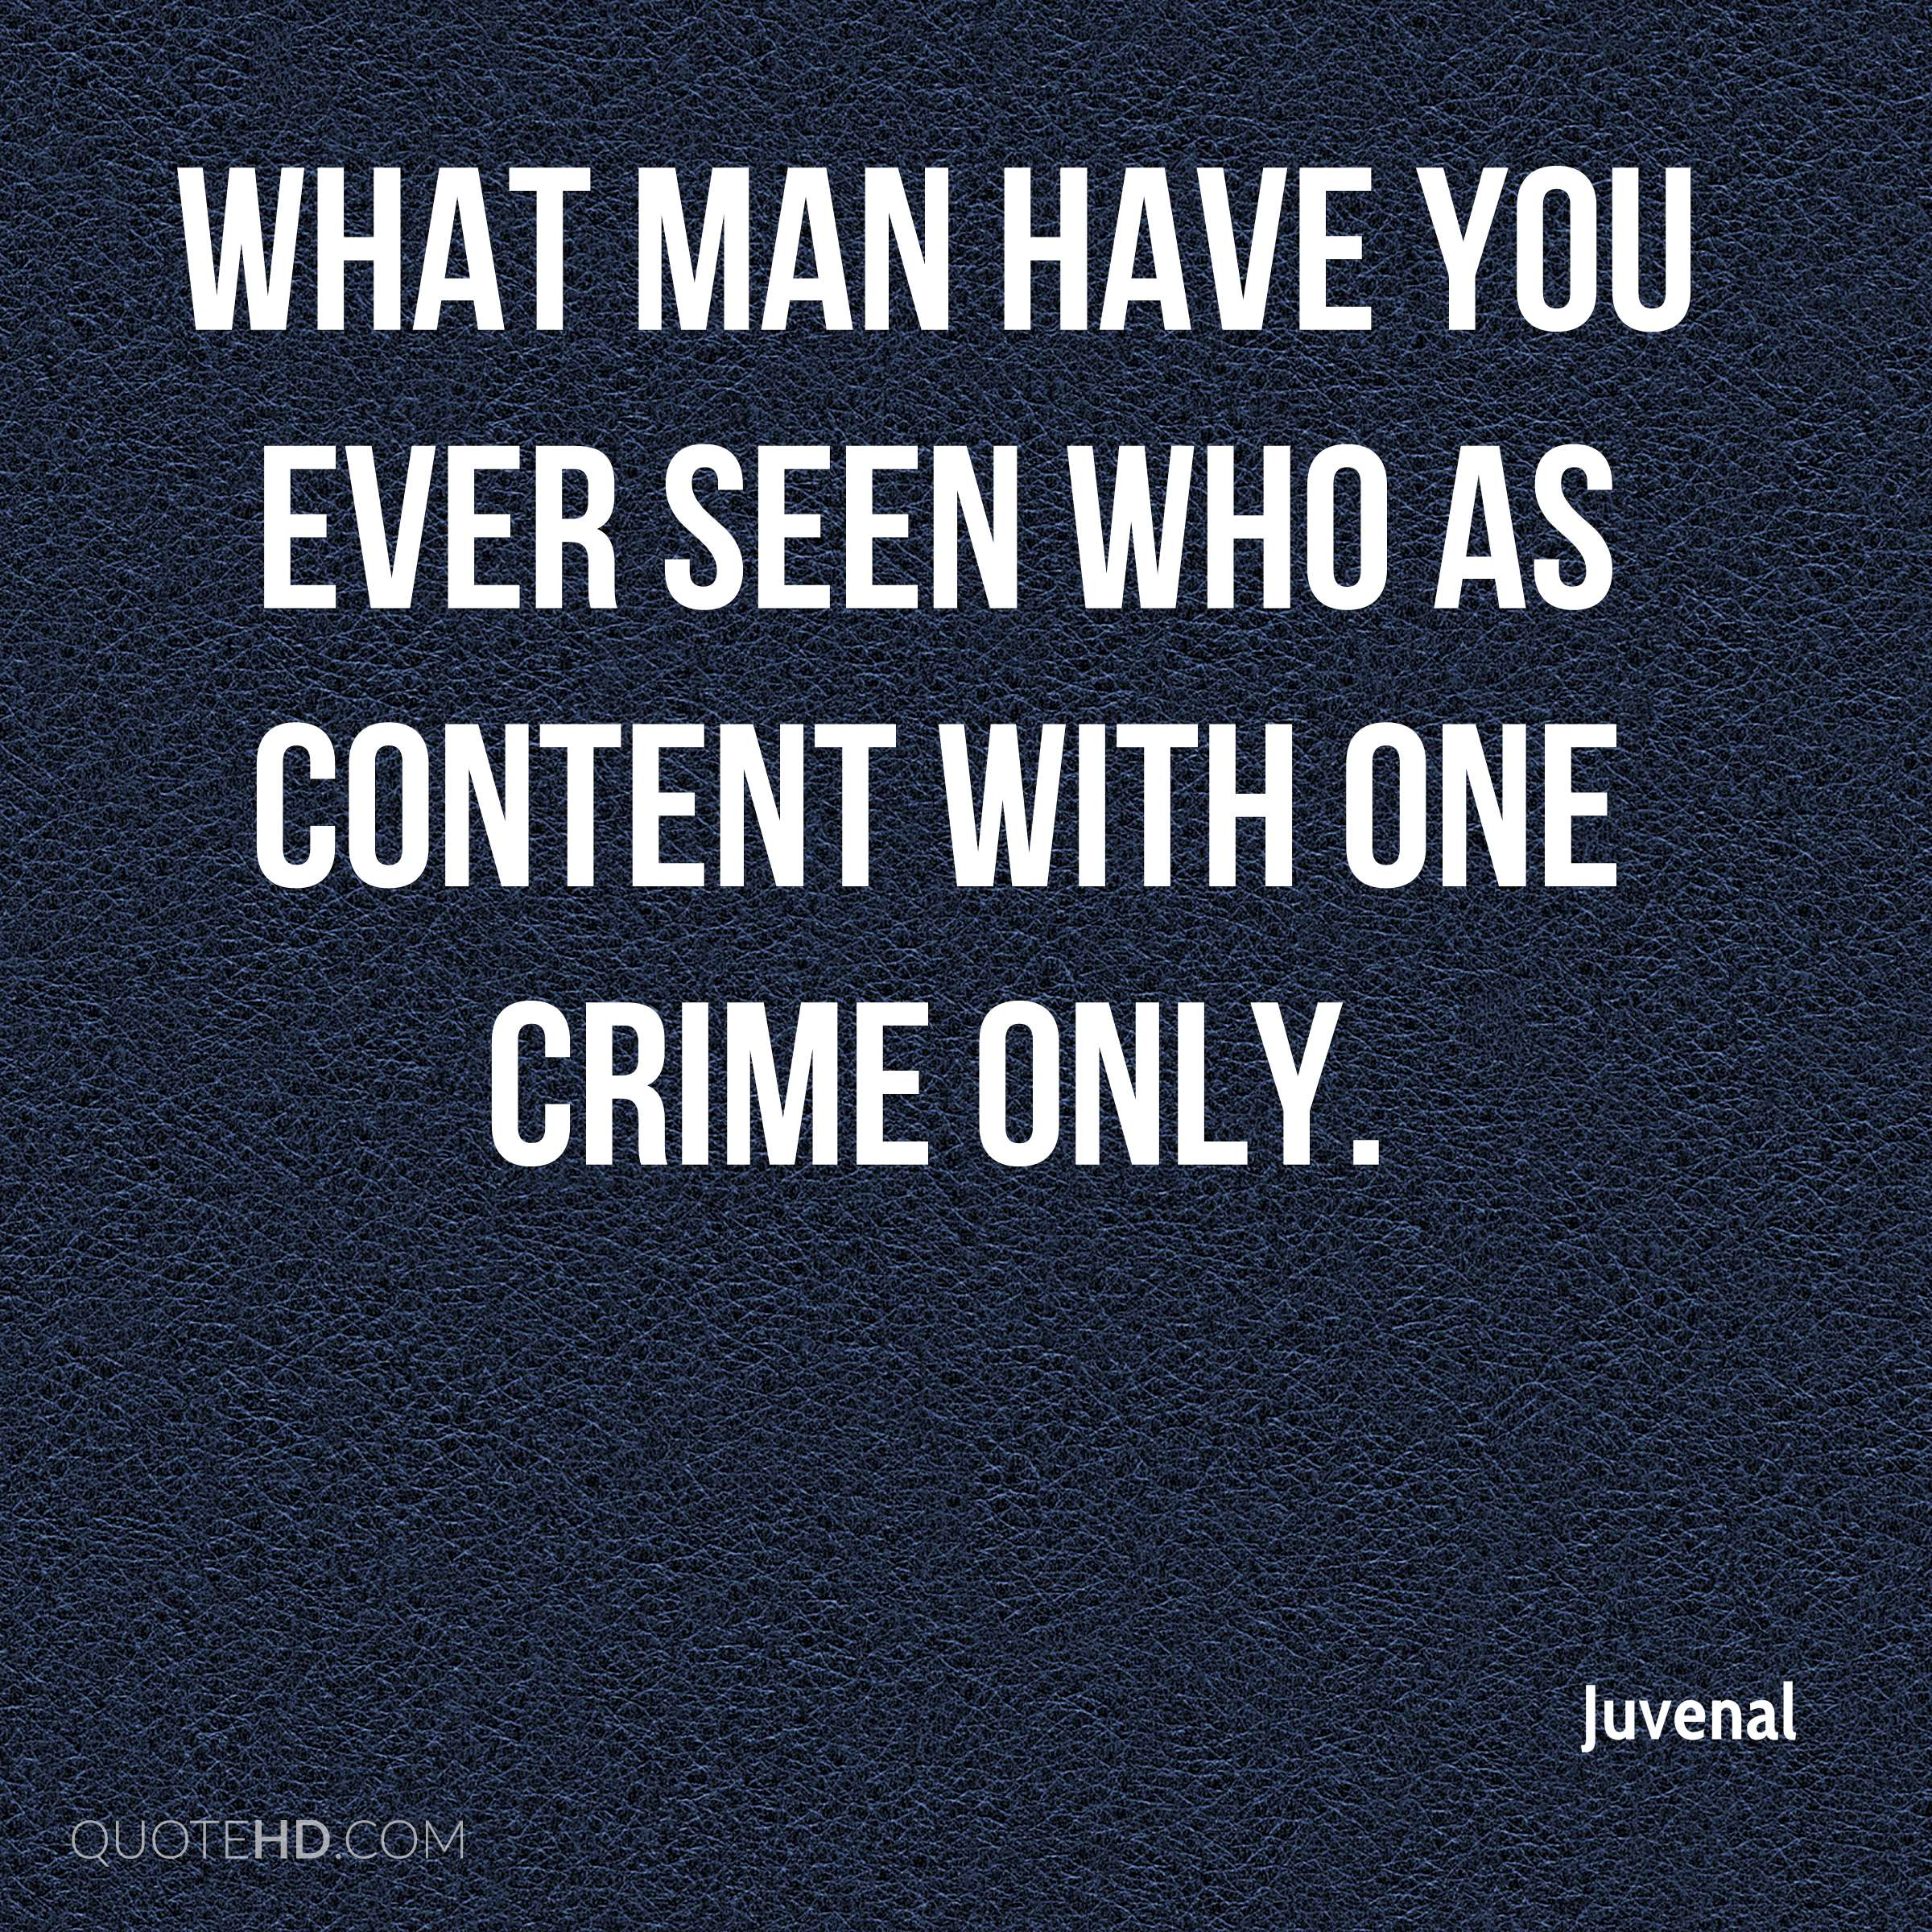 What man have you ever seen who as content with one crime only.